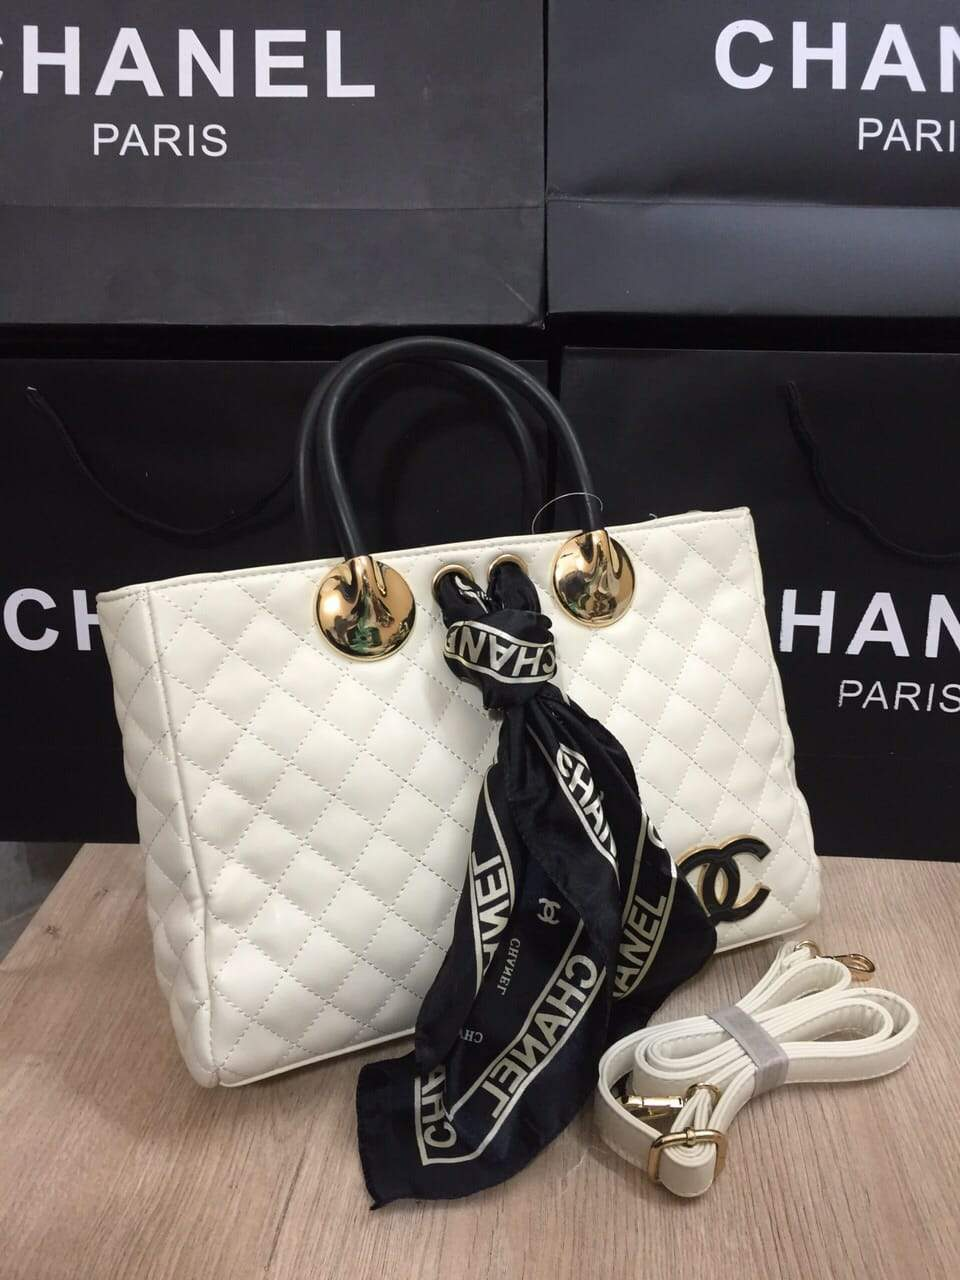 Chanel Leather Handbag